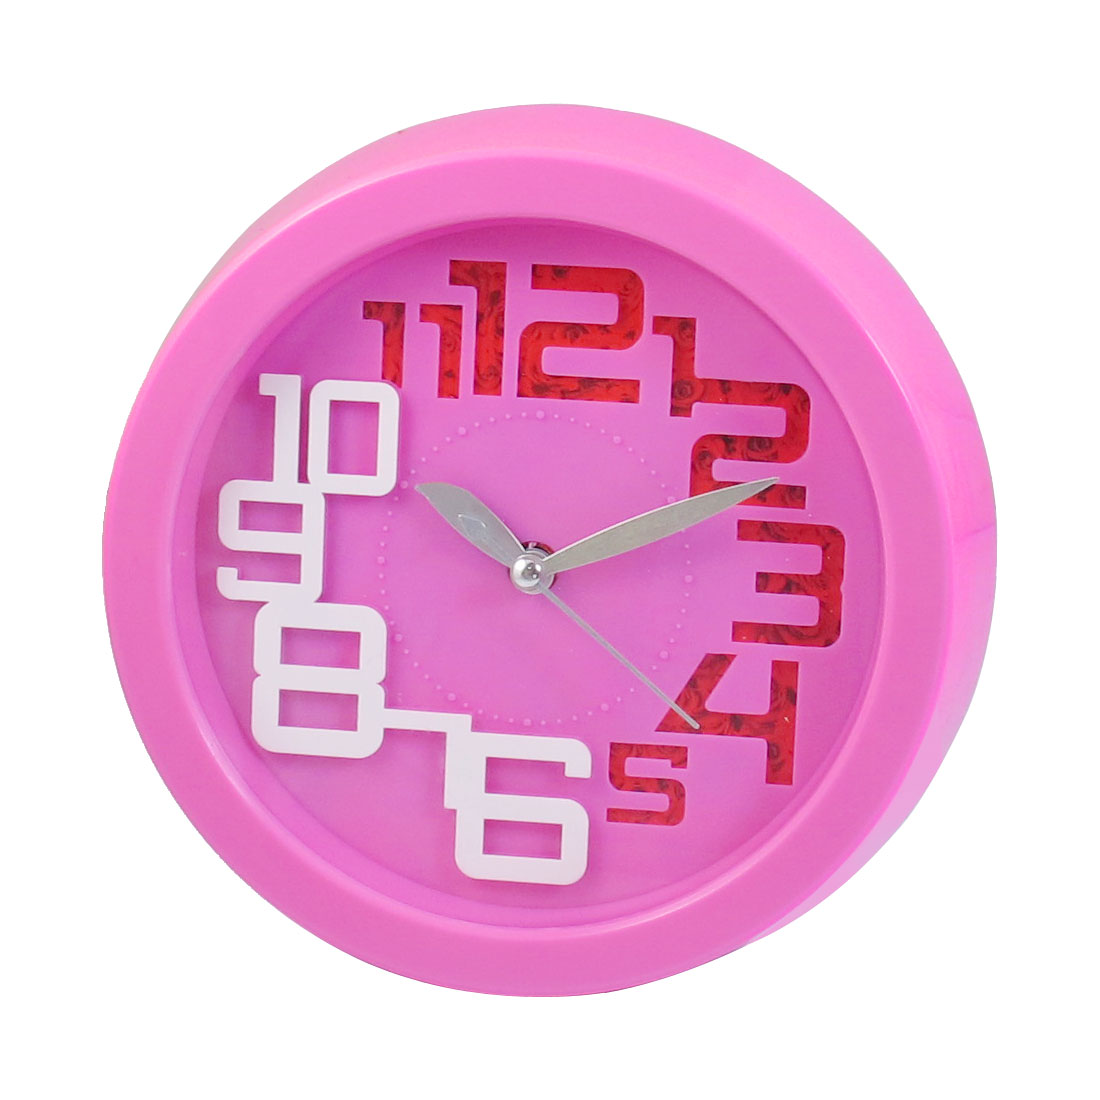 Pink Round Shaped Case Wall Mounted Clock Decoration